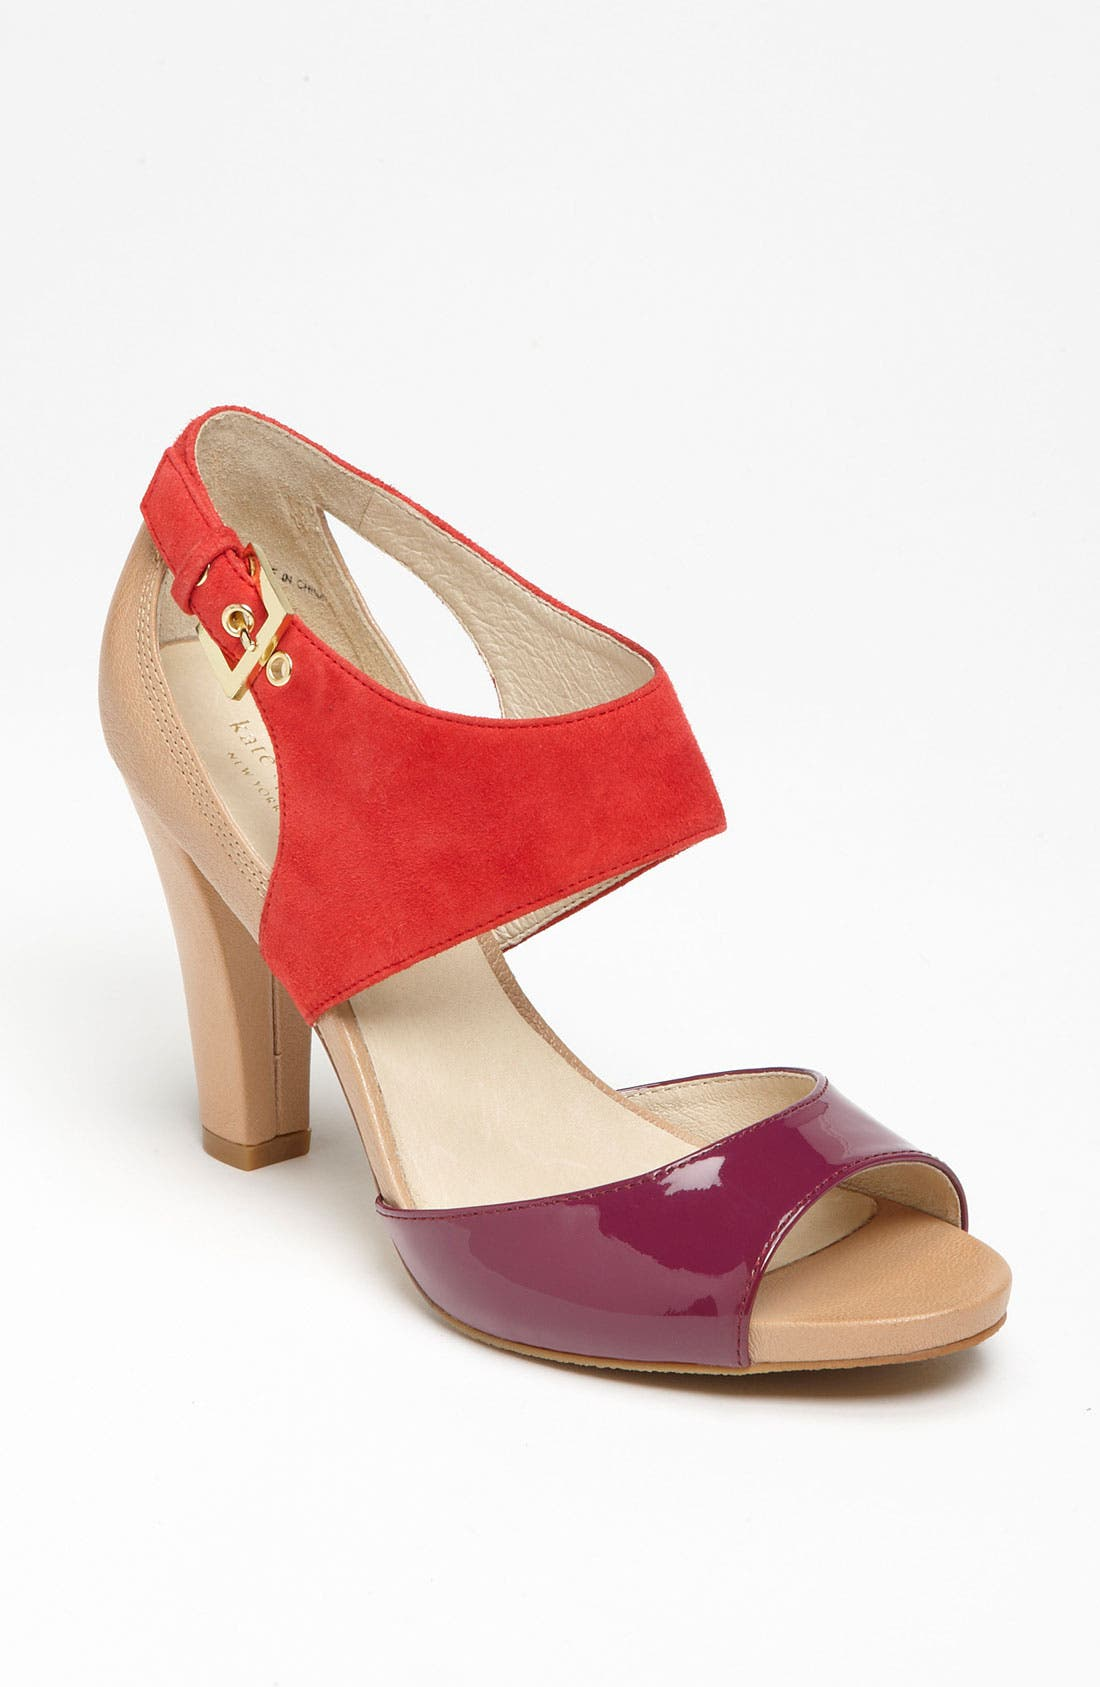 Main Image - kate spade new york 'reena' sandal